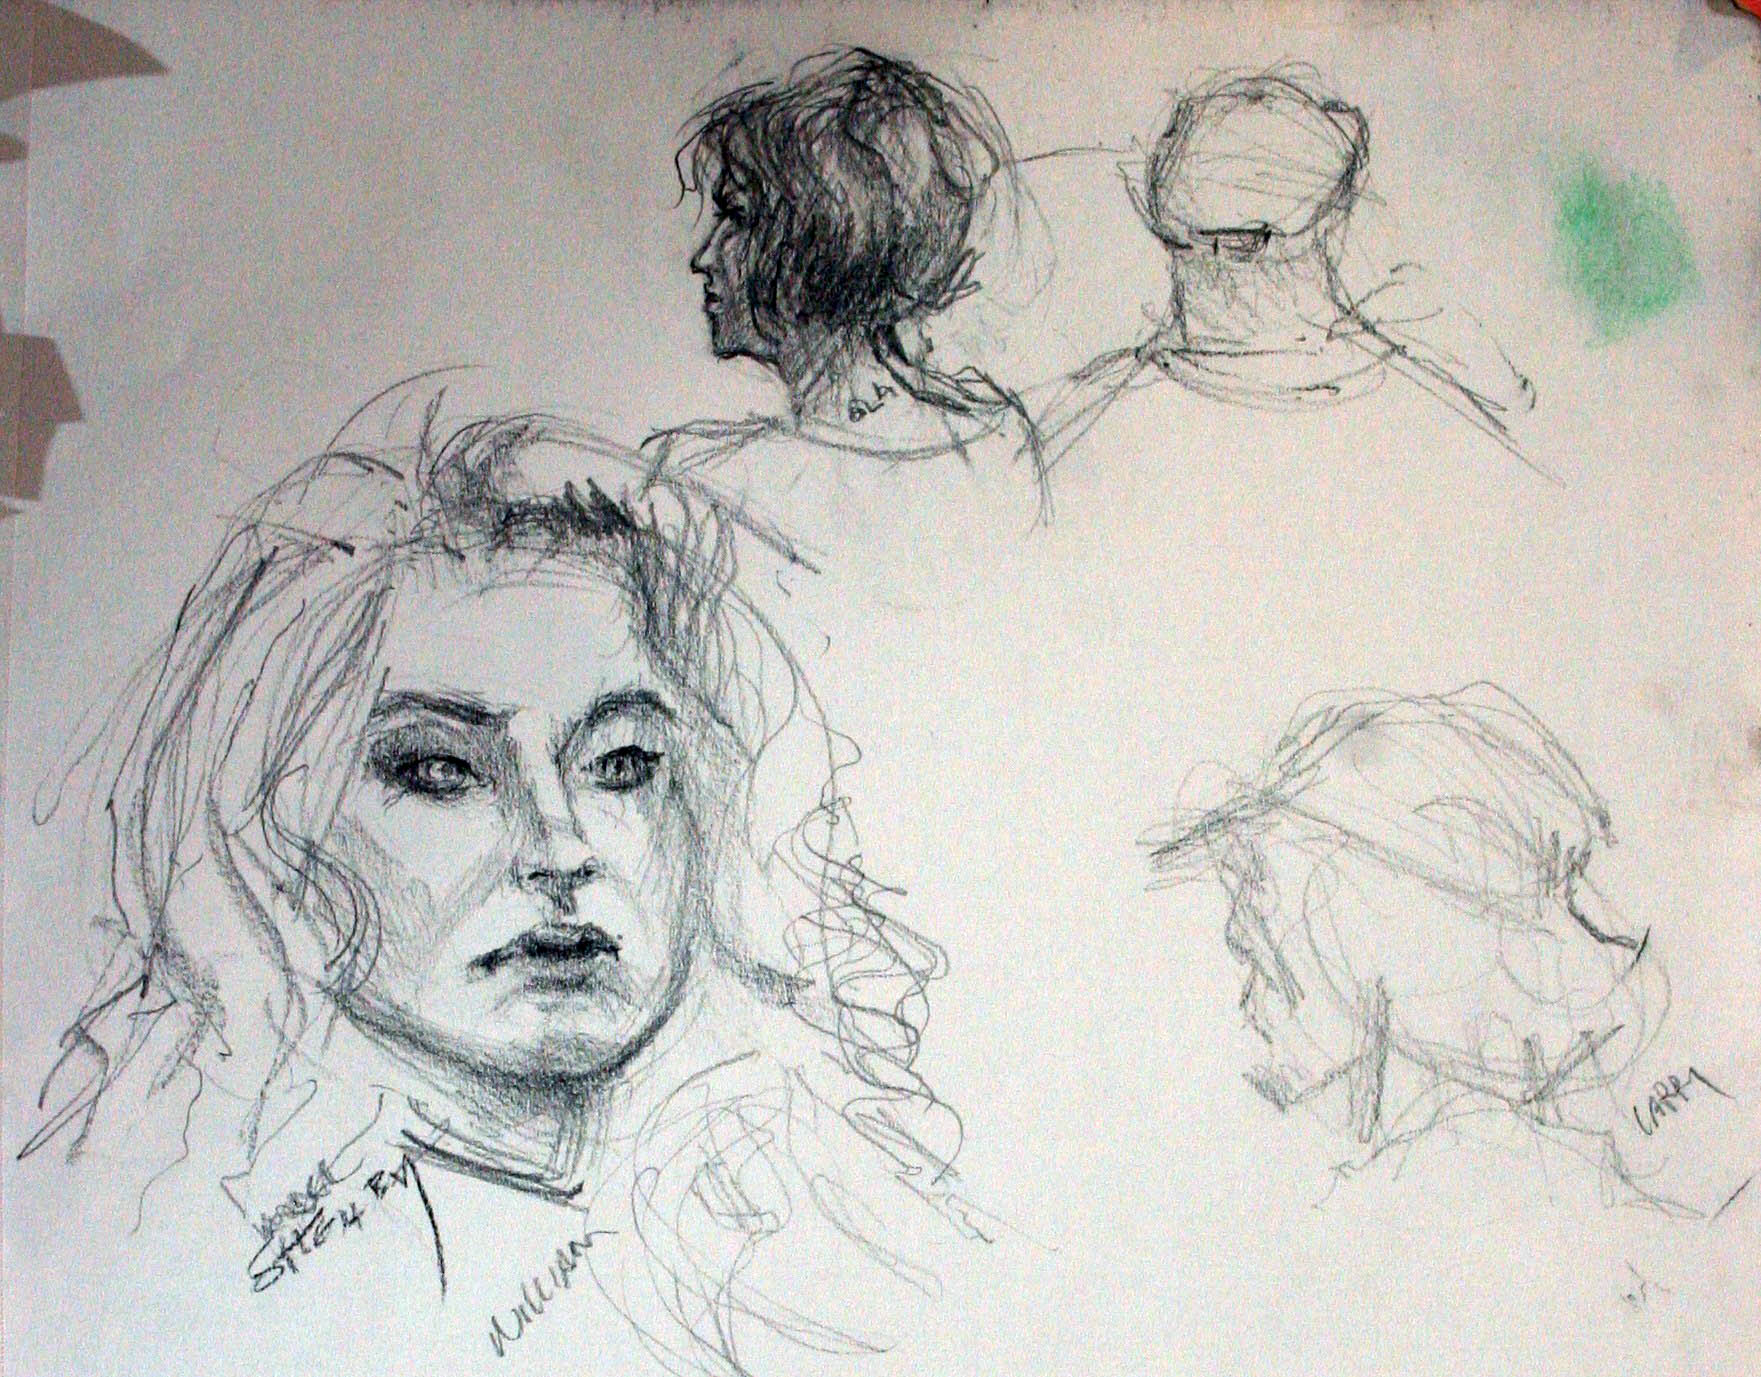 William Leddy did these sketches.